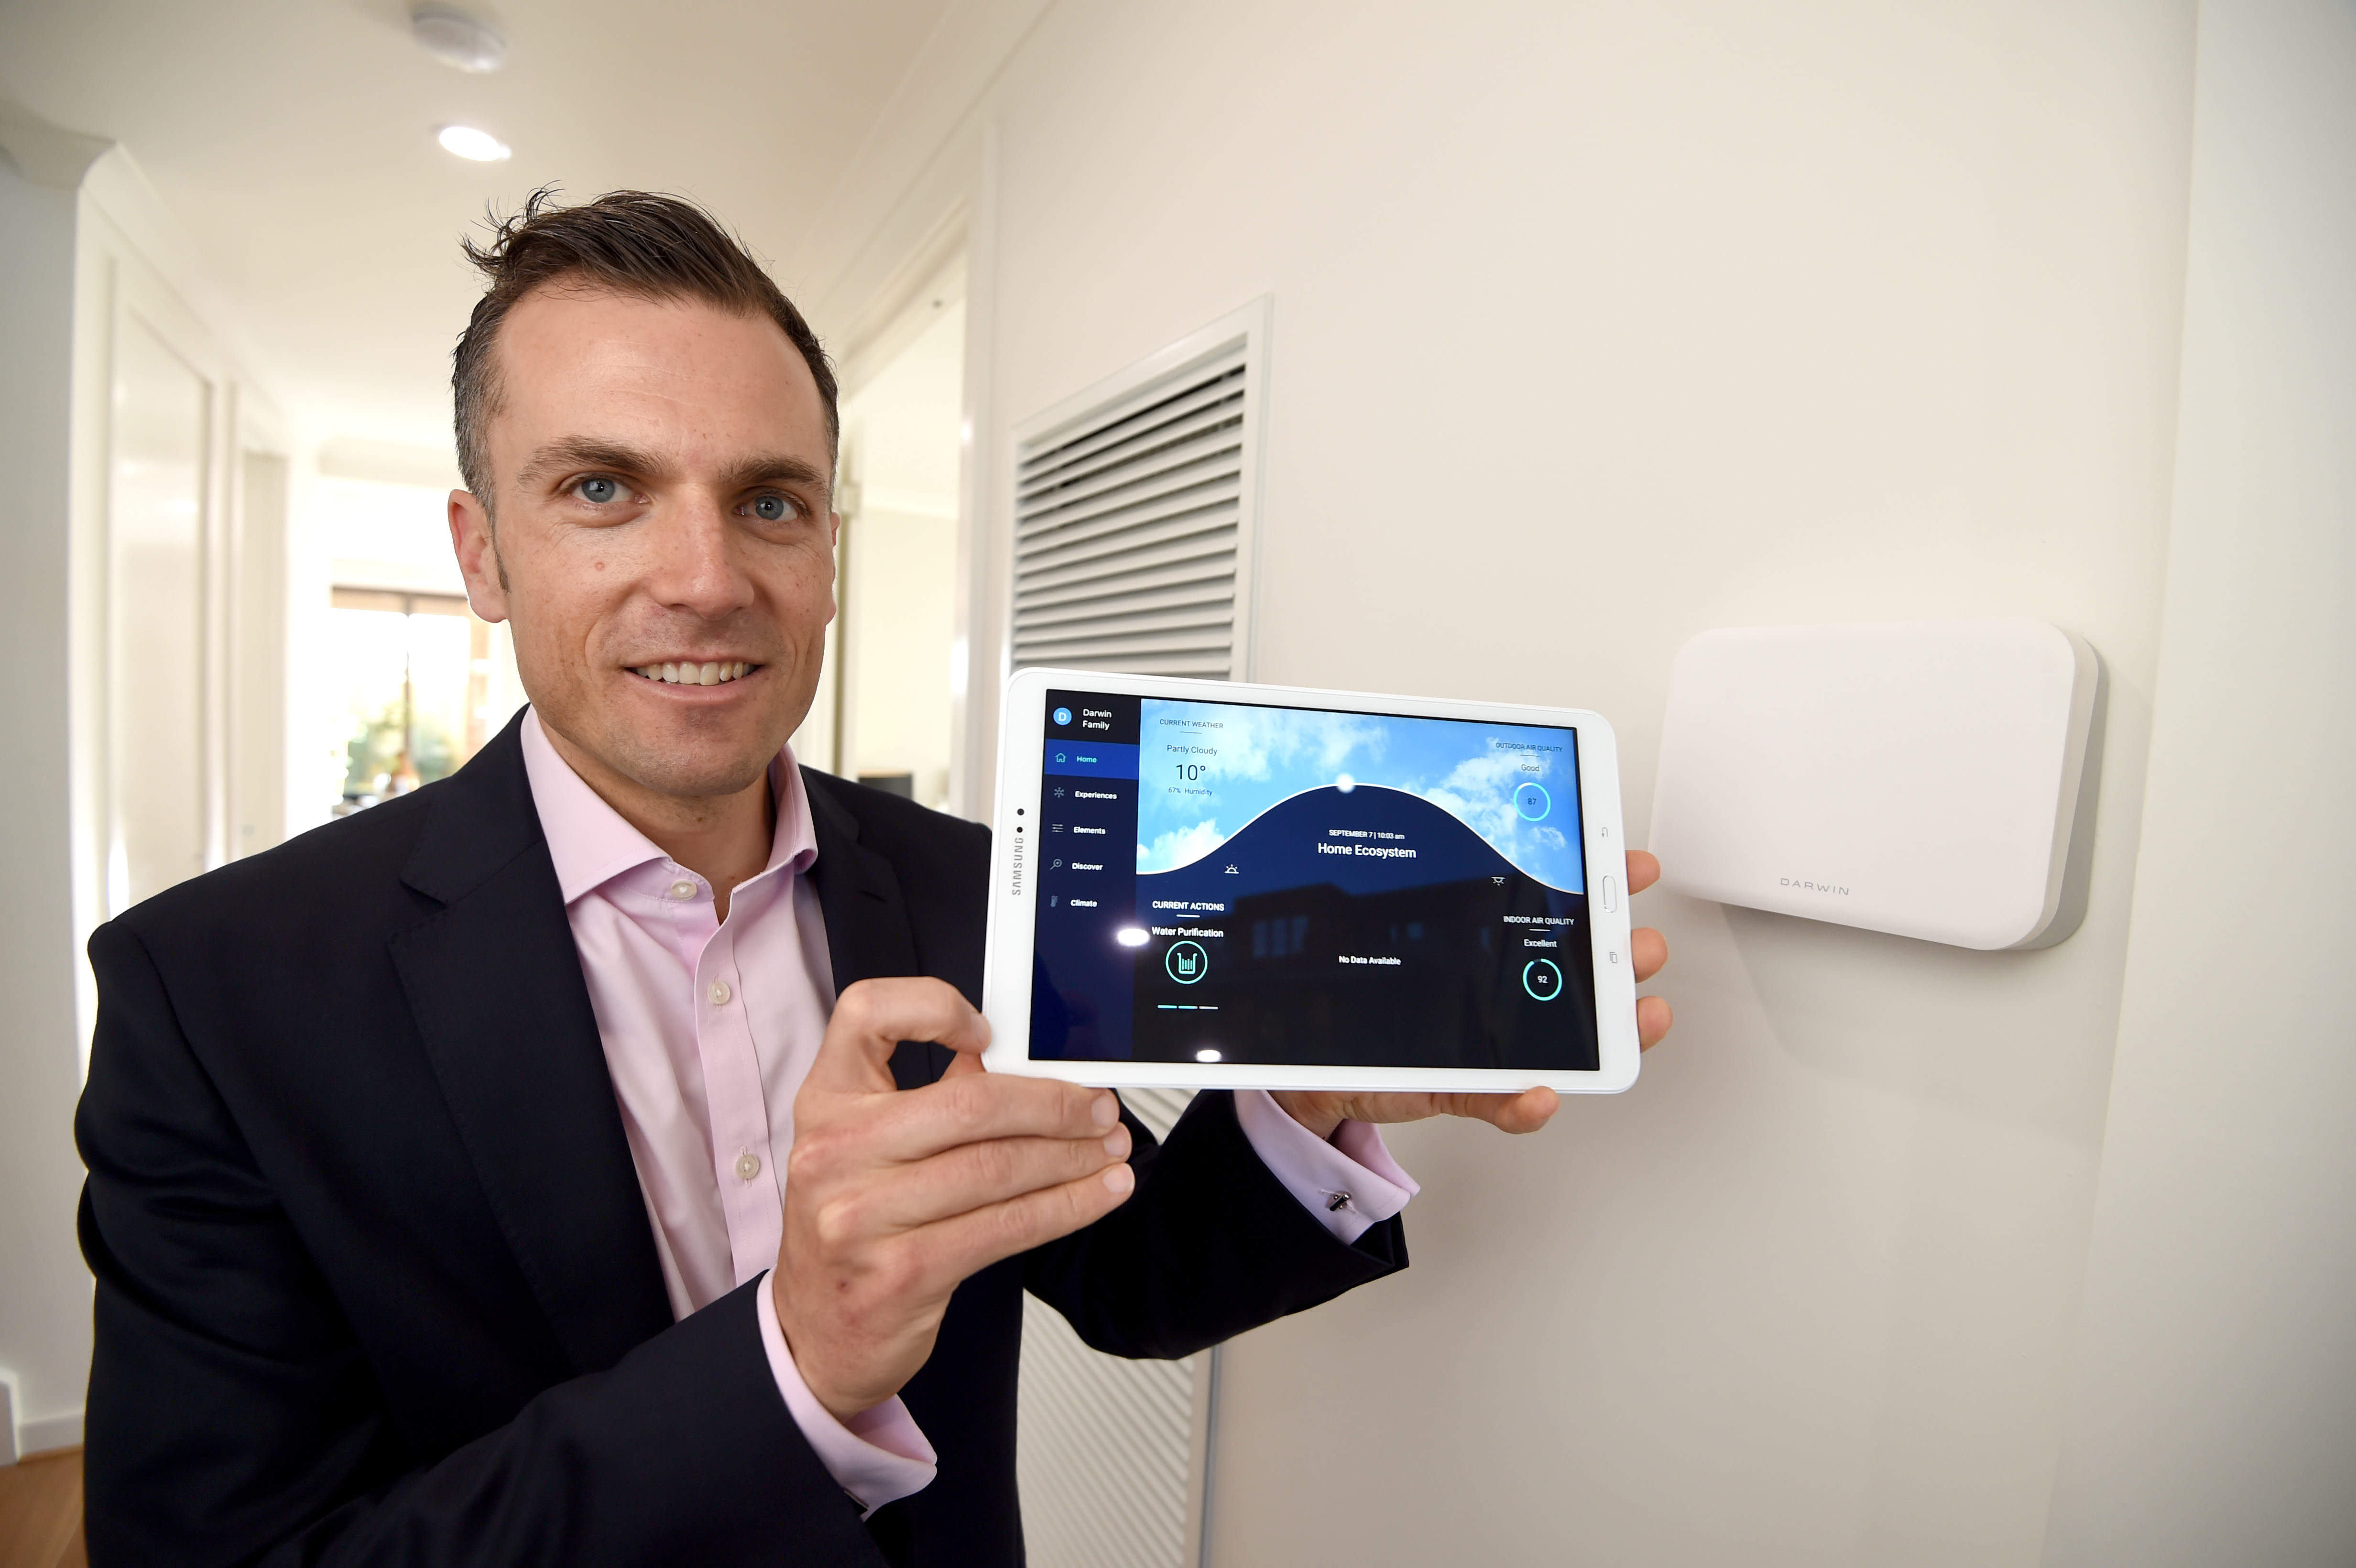 How healthy is your home? Delos Australia's Anthony Scarff discusses the launch of exciting new technology in Australia